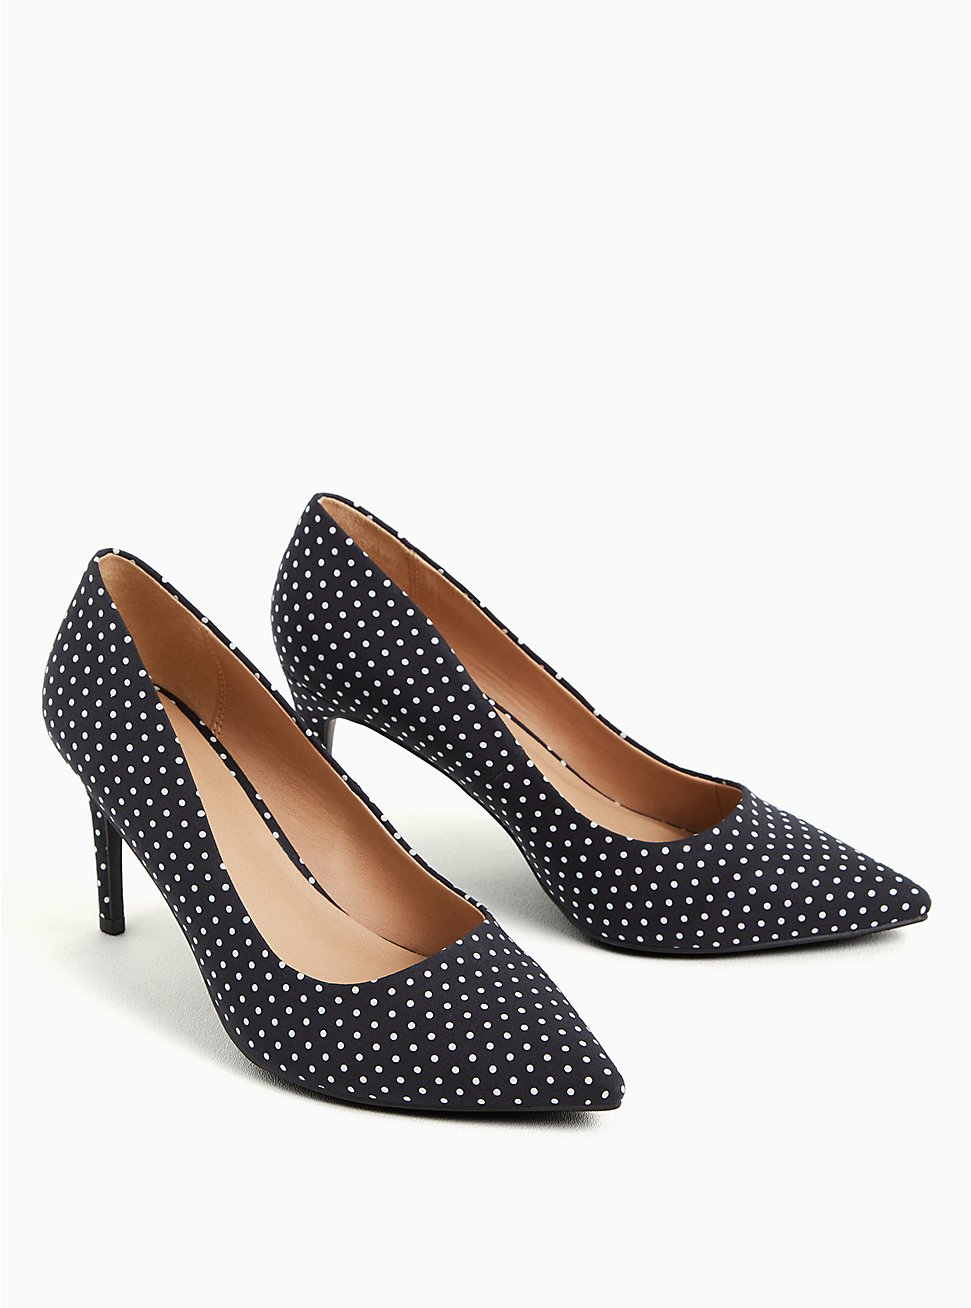 Black Polka Dot  Pointed Toe Pump (WW), BLACK, hi-res